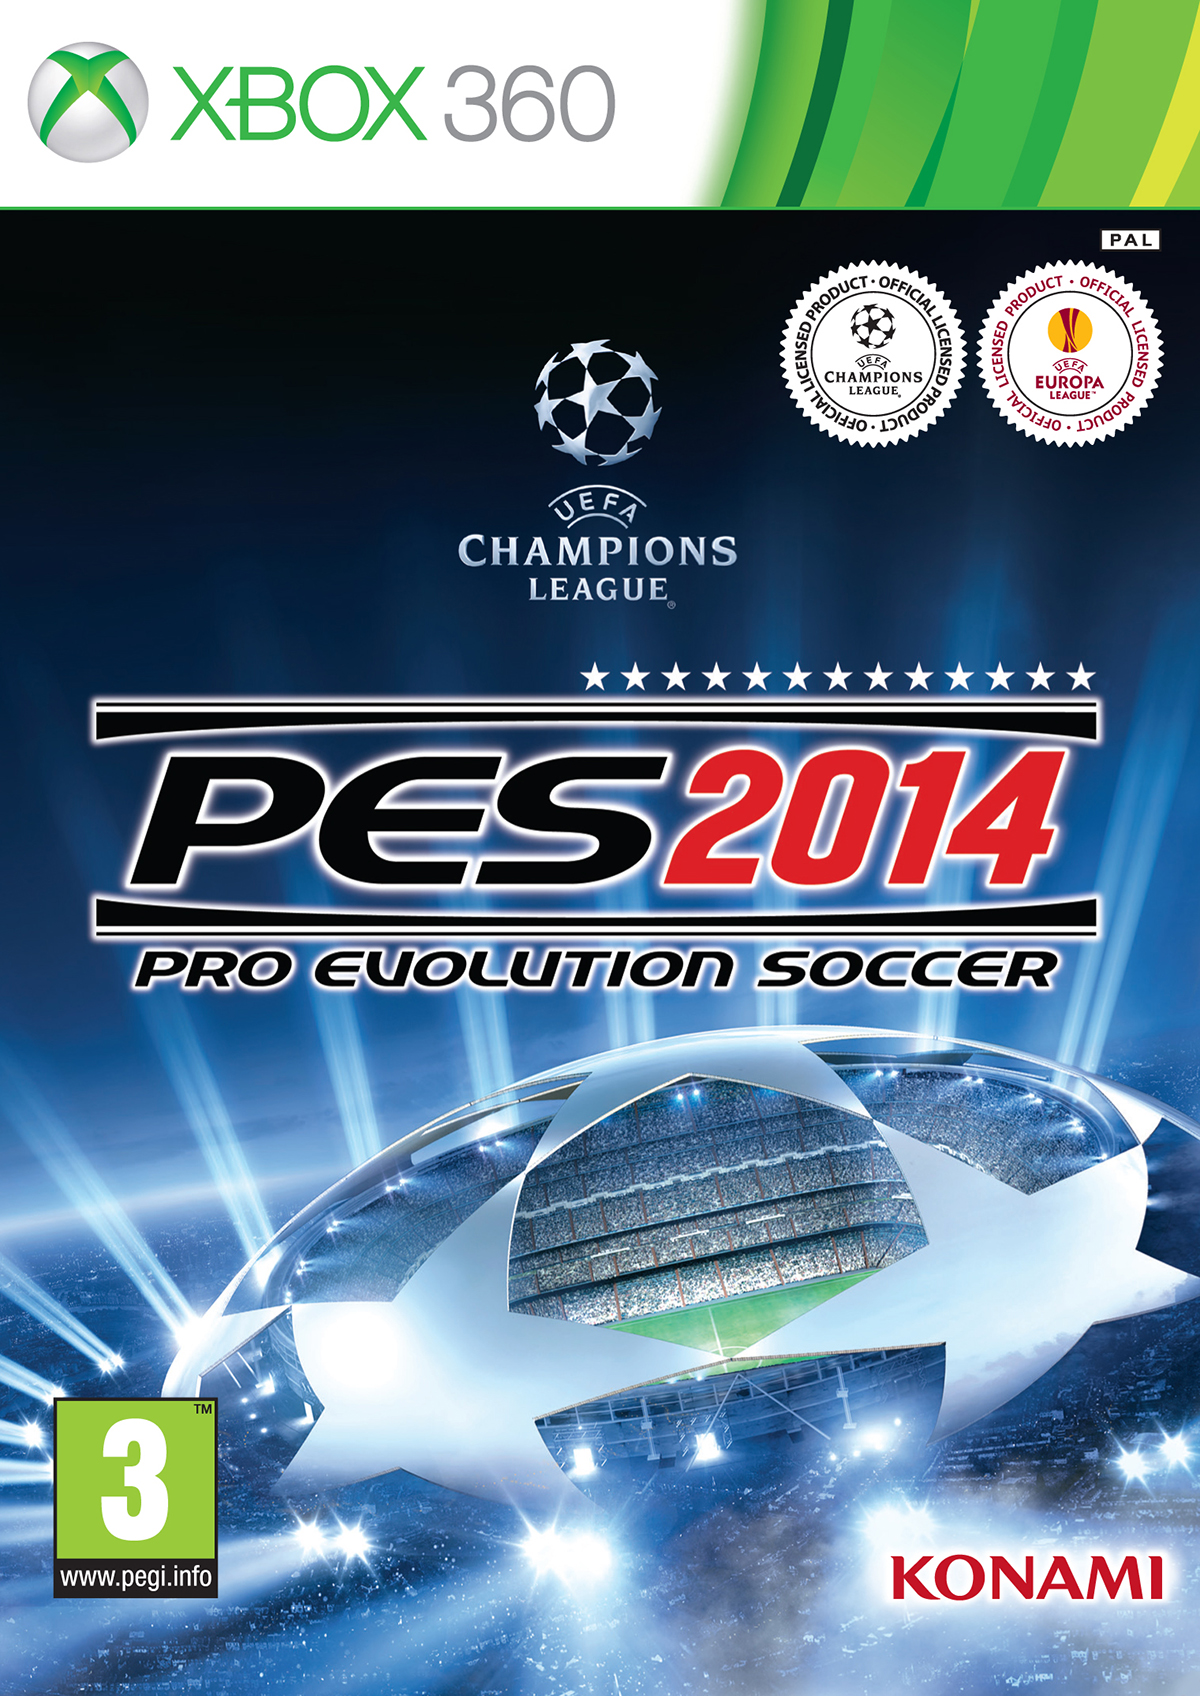 Cover von Pro Evolution Soccer 2014 mit Logo der UEFA Champions League